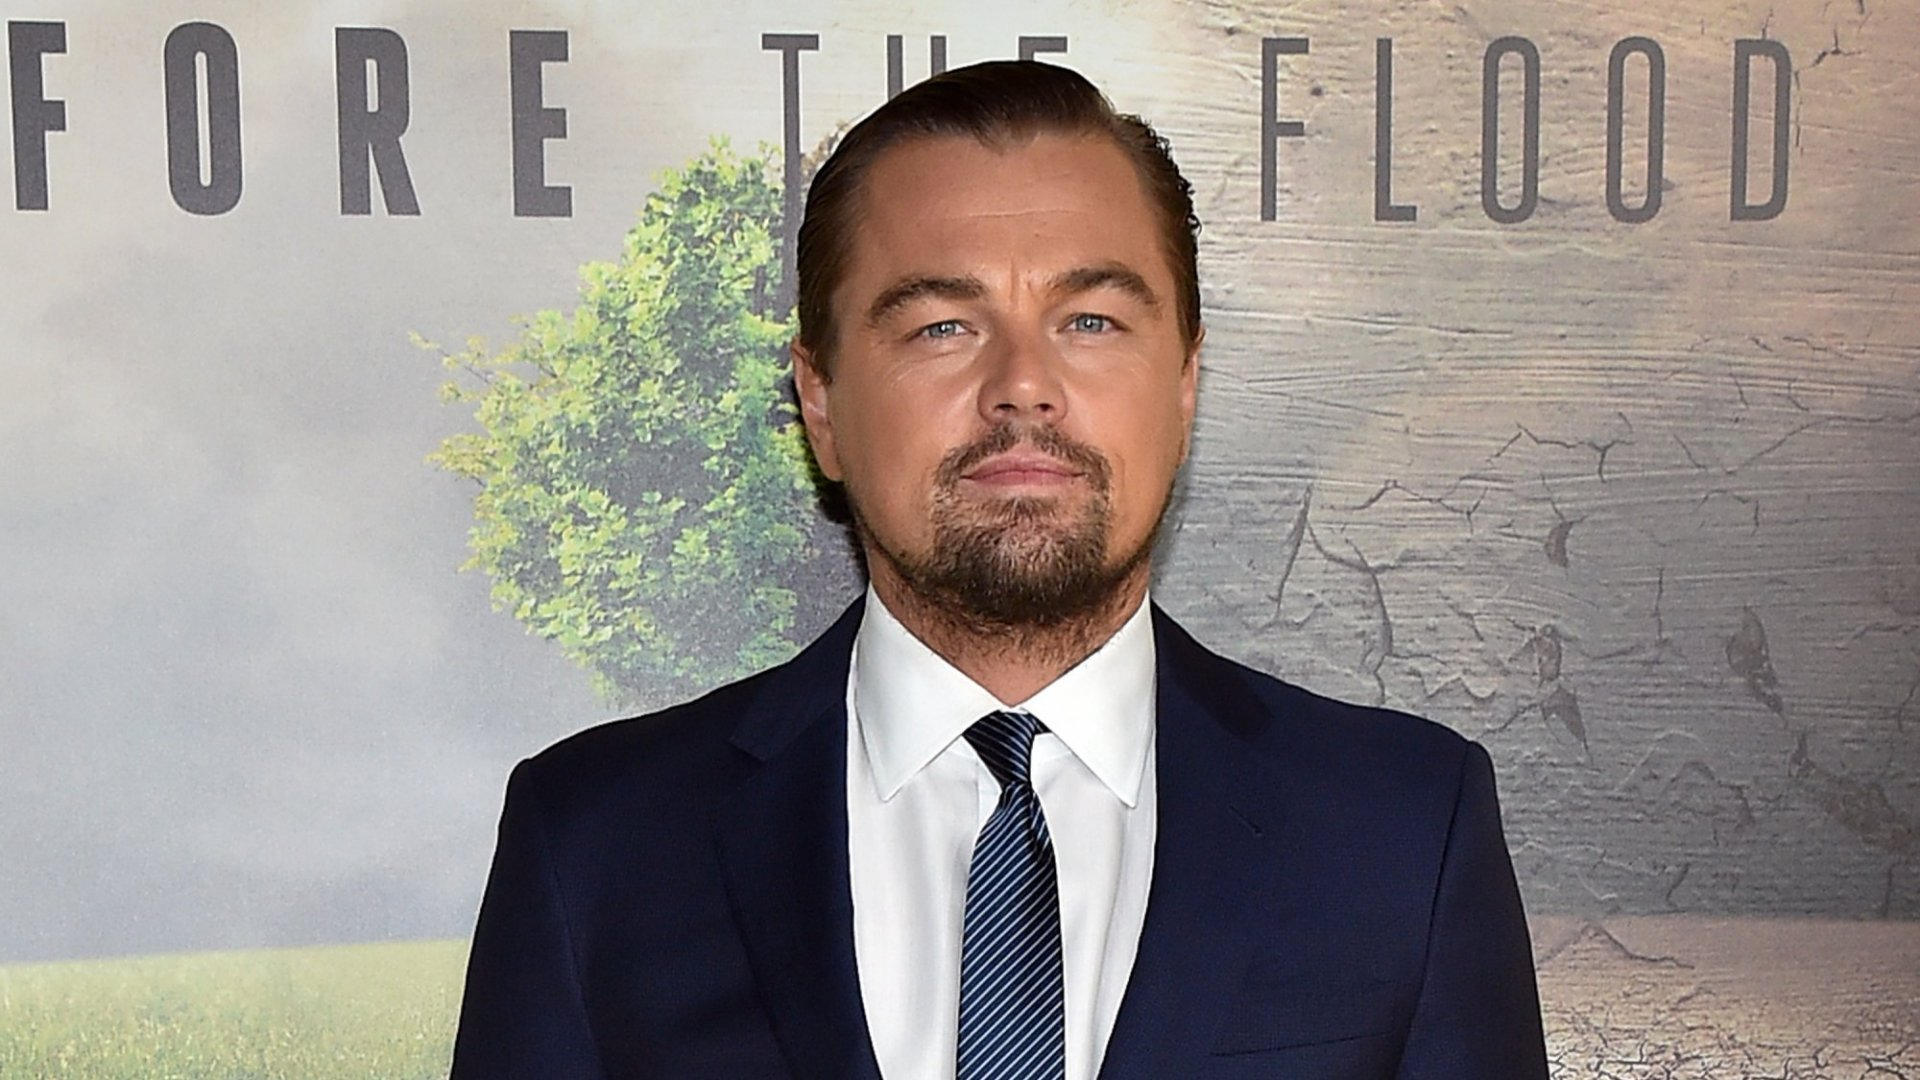 Leonardo DiCaprio, Martin Scorsese, and Trent Reznor's Important but Flawed Statement